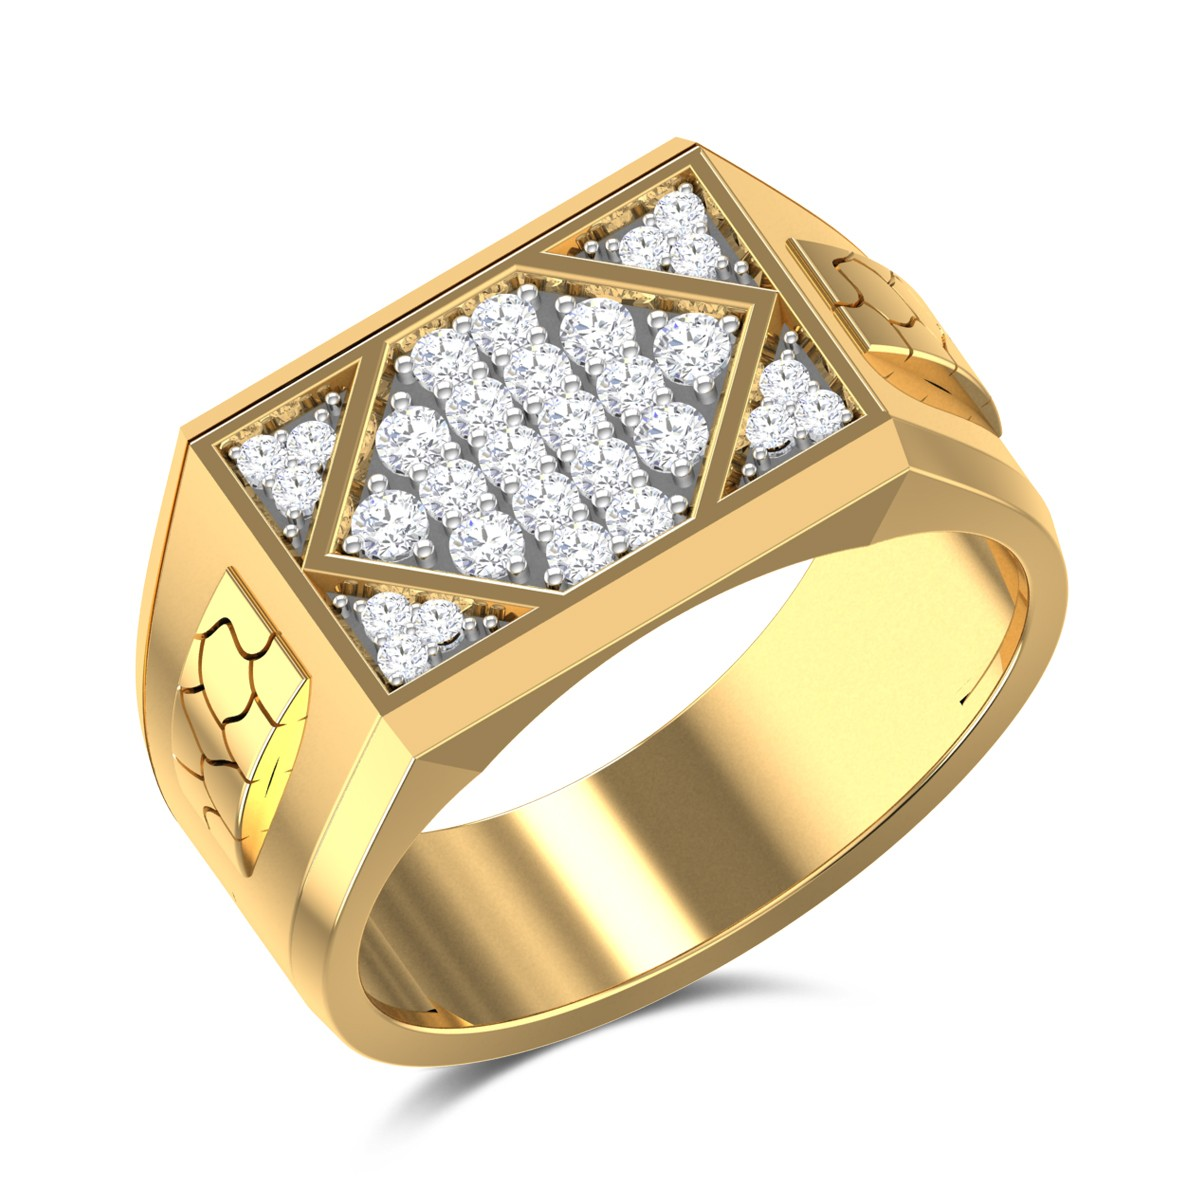 Shona Diamond Ring